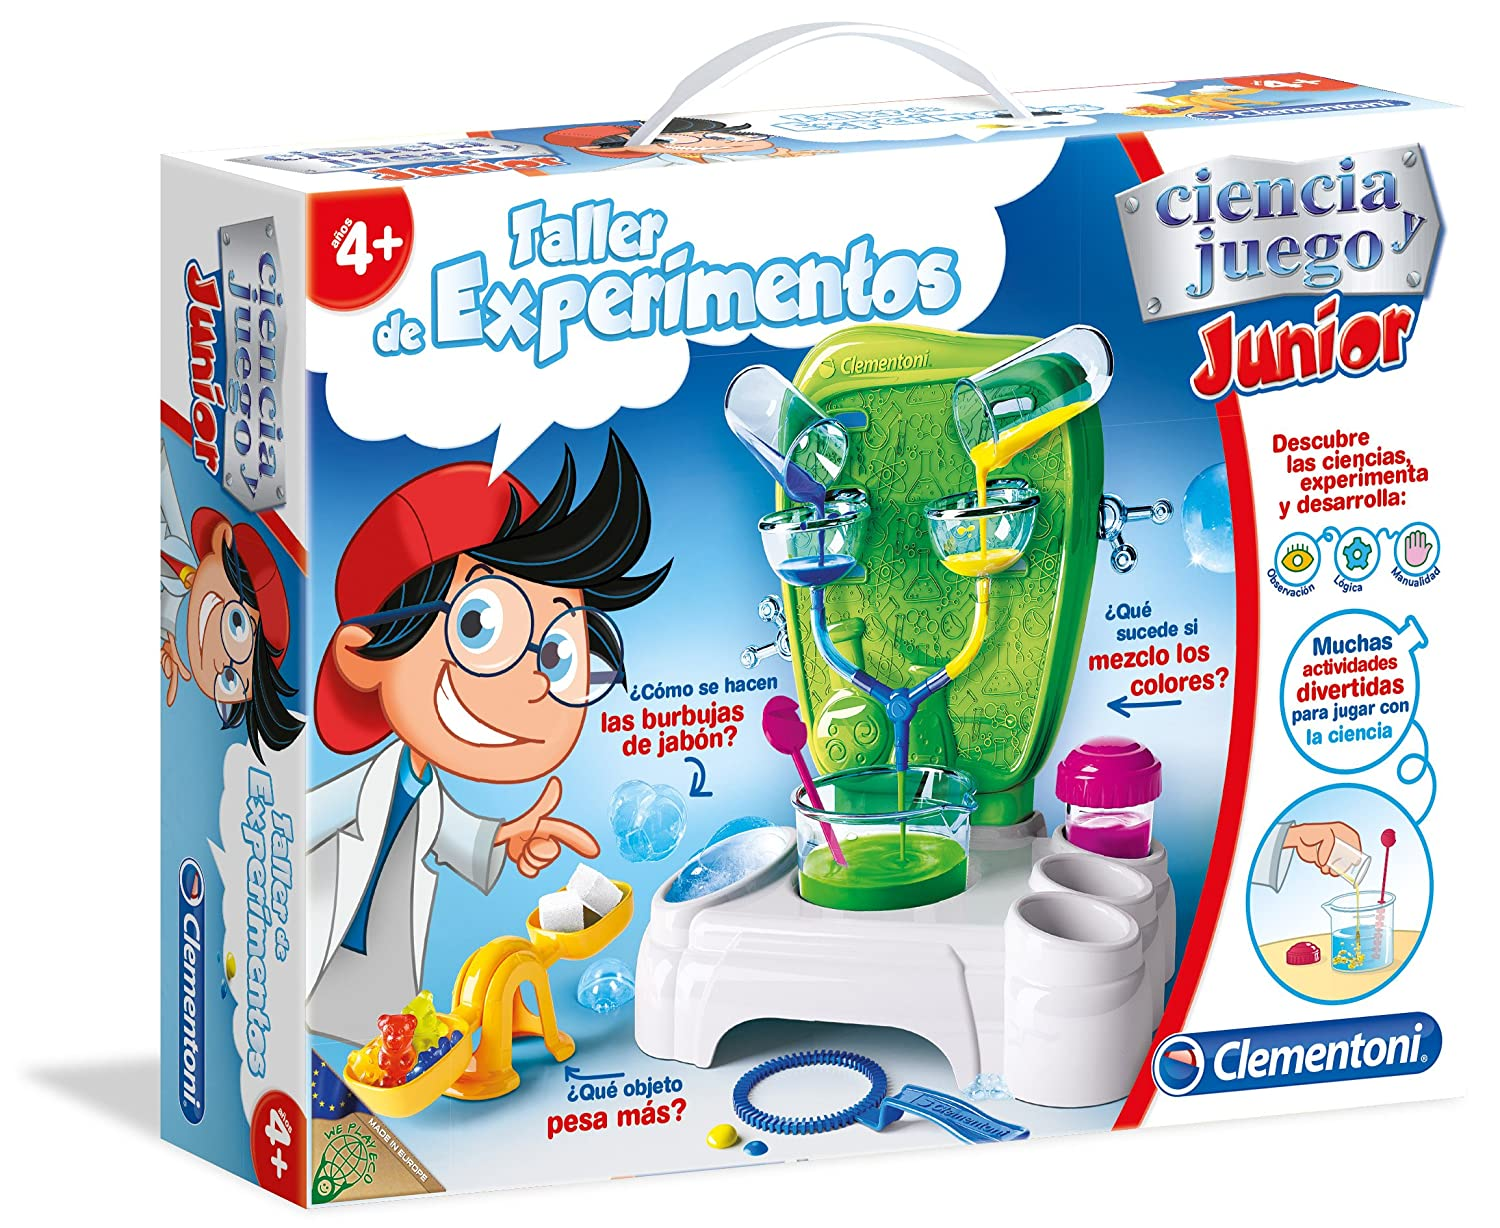 Clementoni Ciencia Junior Jardin Botanica 55156 9 Amazon Es